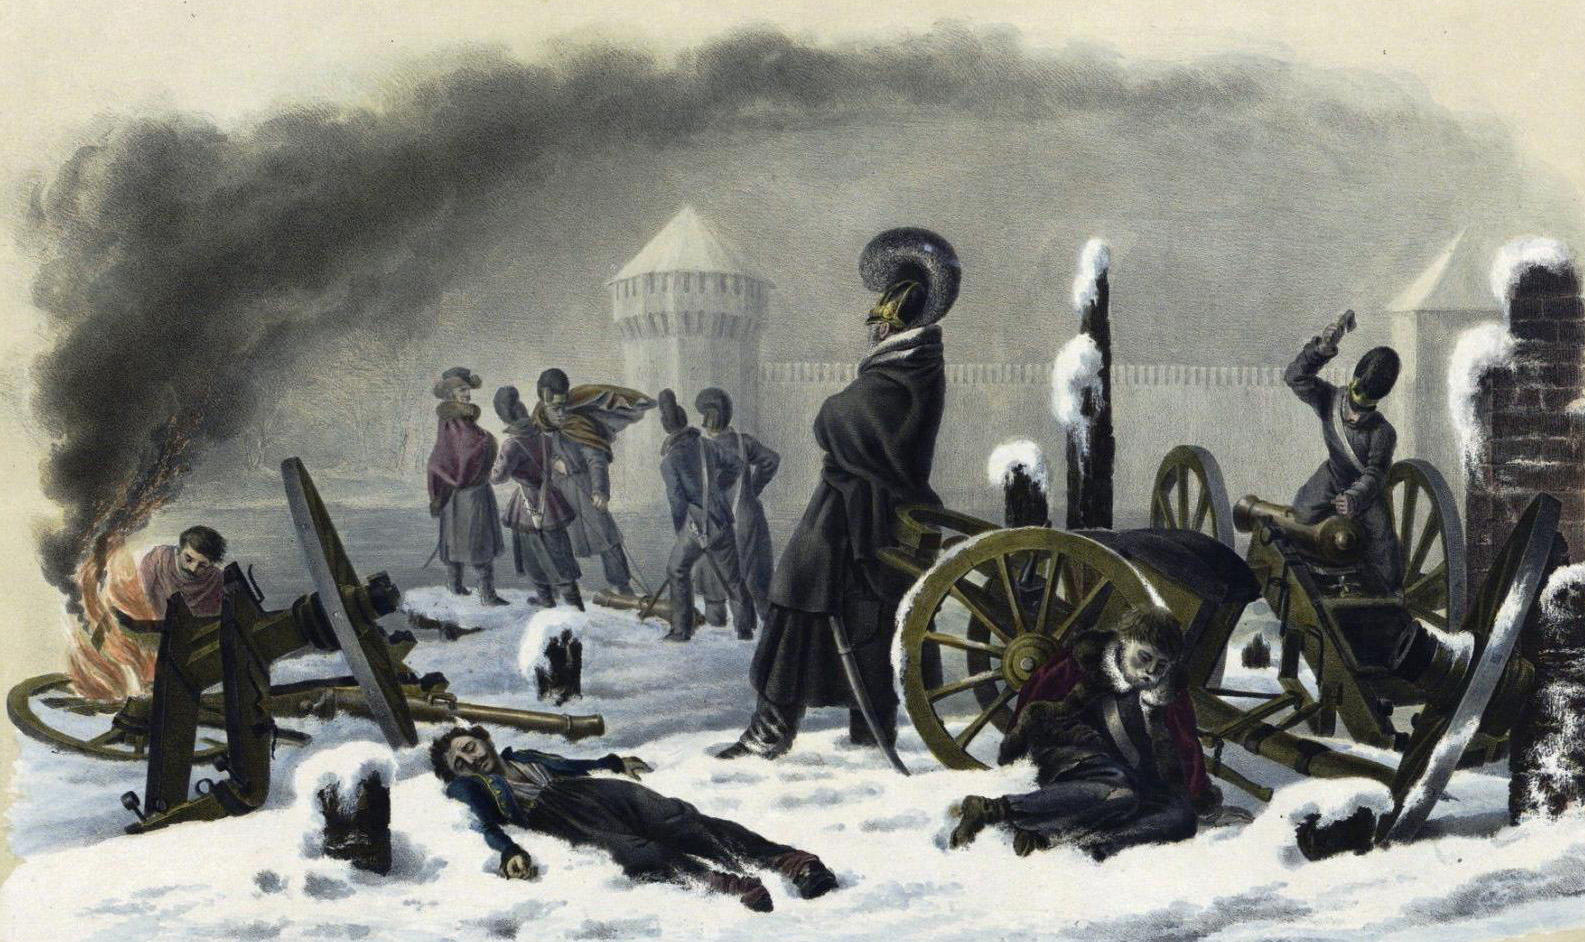 The return to Smolensk, November 1812